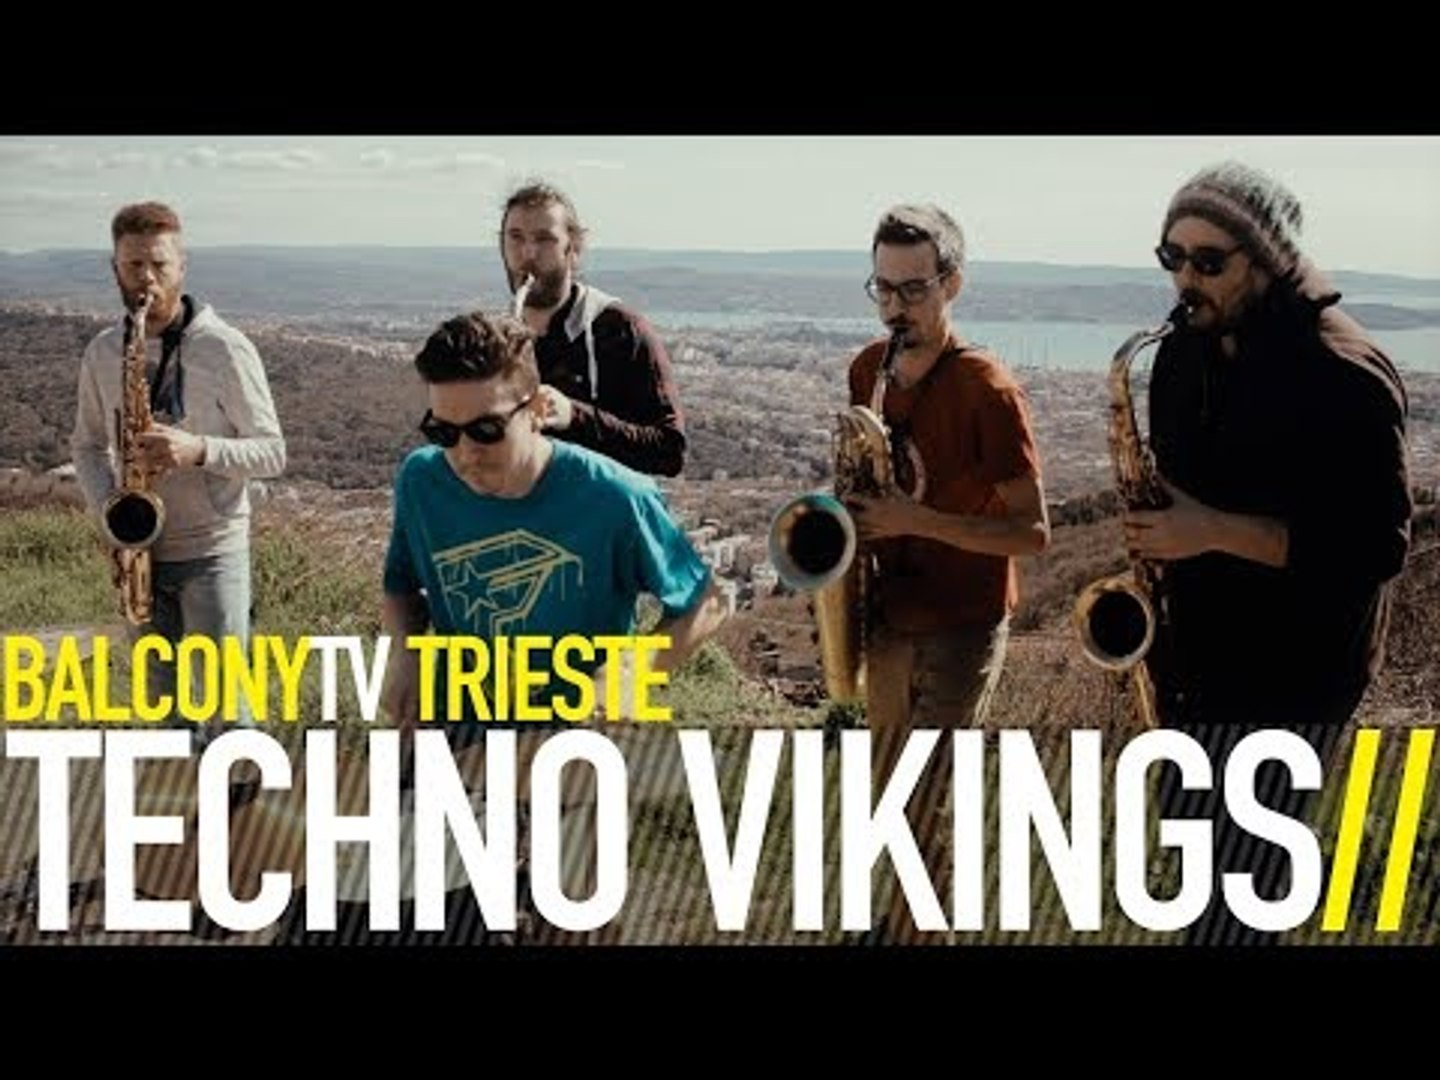 TECHNO VIKINGS - DU BIST UND AMEN (BalconyTV)